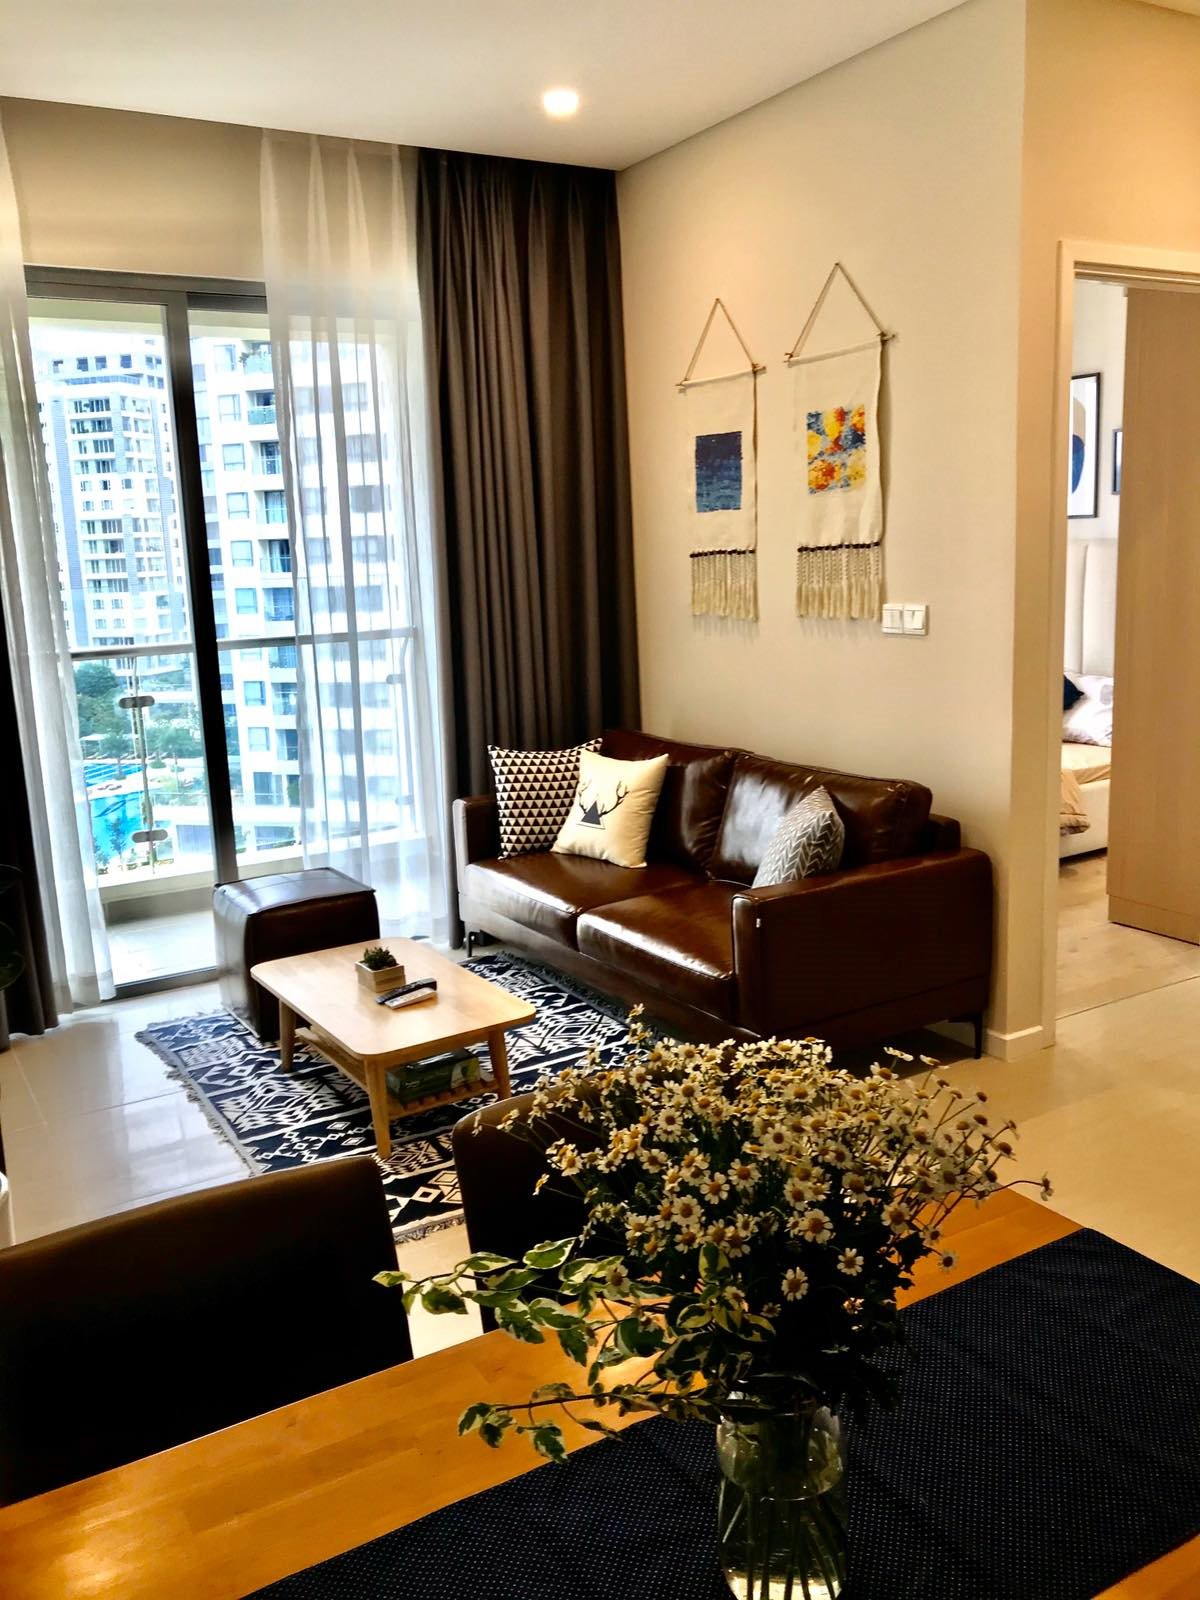 DI0930 - Diamond Island Apartment For Sale & Sale in Ho Chi Minh City - 1 bedroom